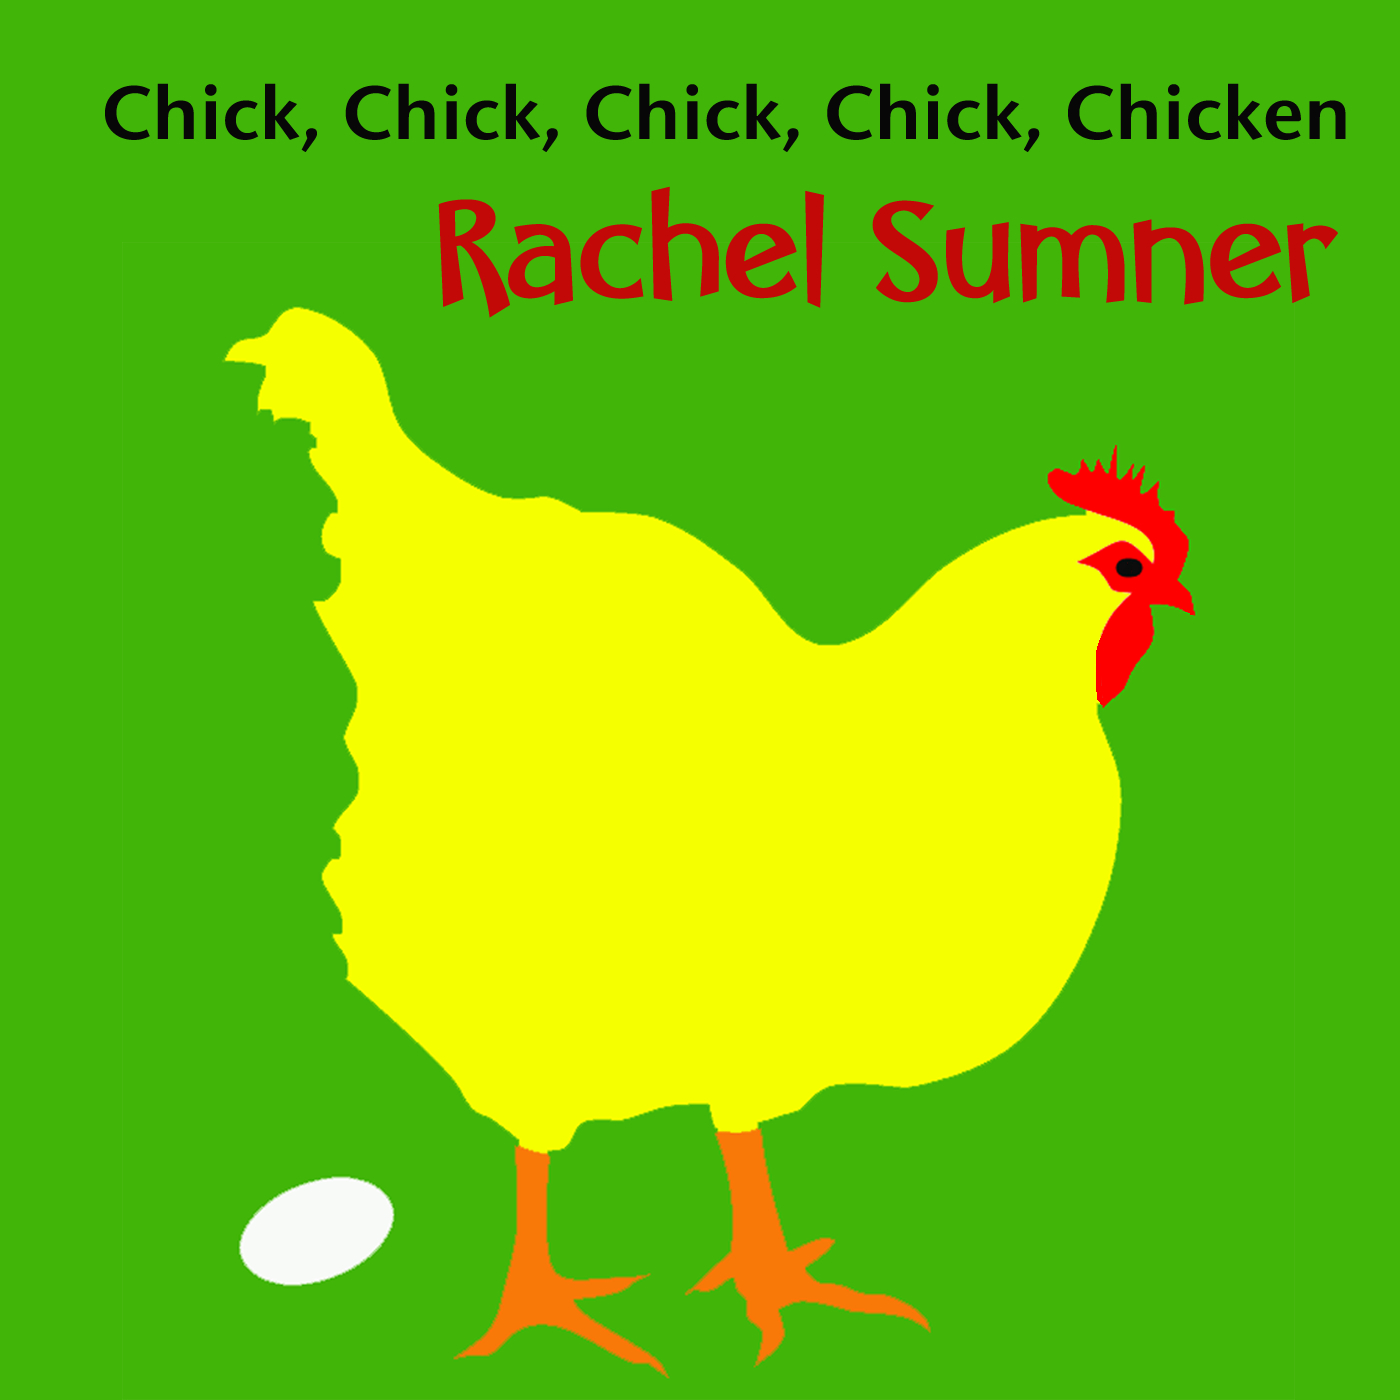 Chick, Chick, Chick, Chick, Chicken (Lay a Little Egg for Me) Song Download